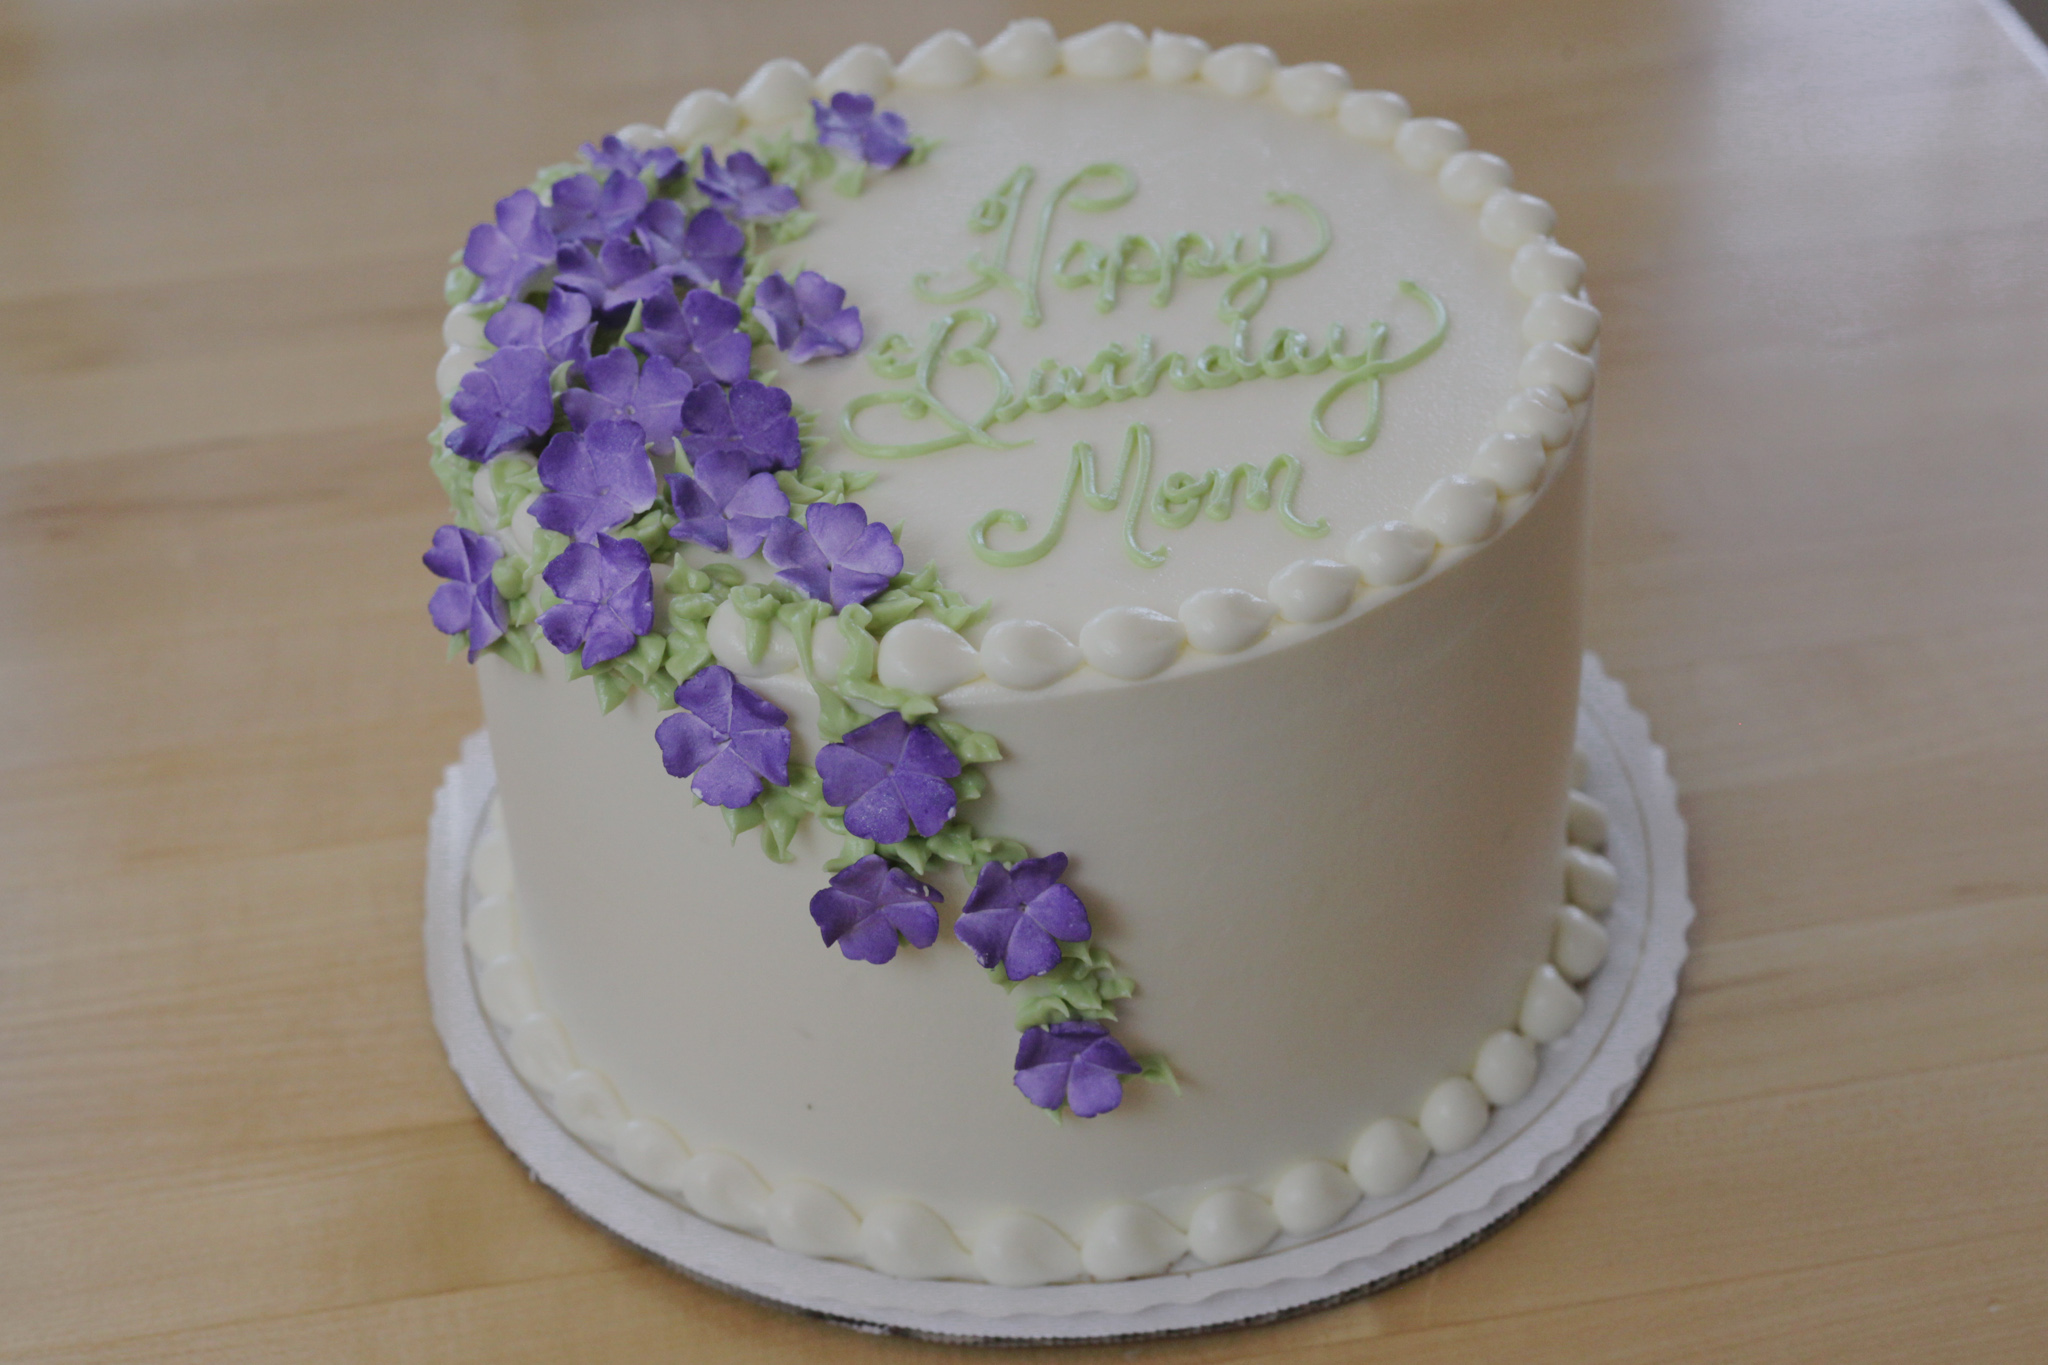 Birthday Cake Ideas For My Mom : Happy Birthday Cake for Mom! Cruelty-Free Faves, by ...